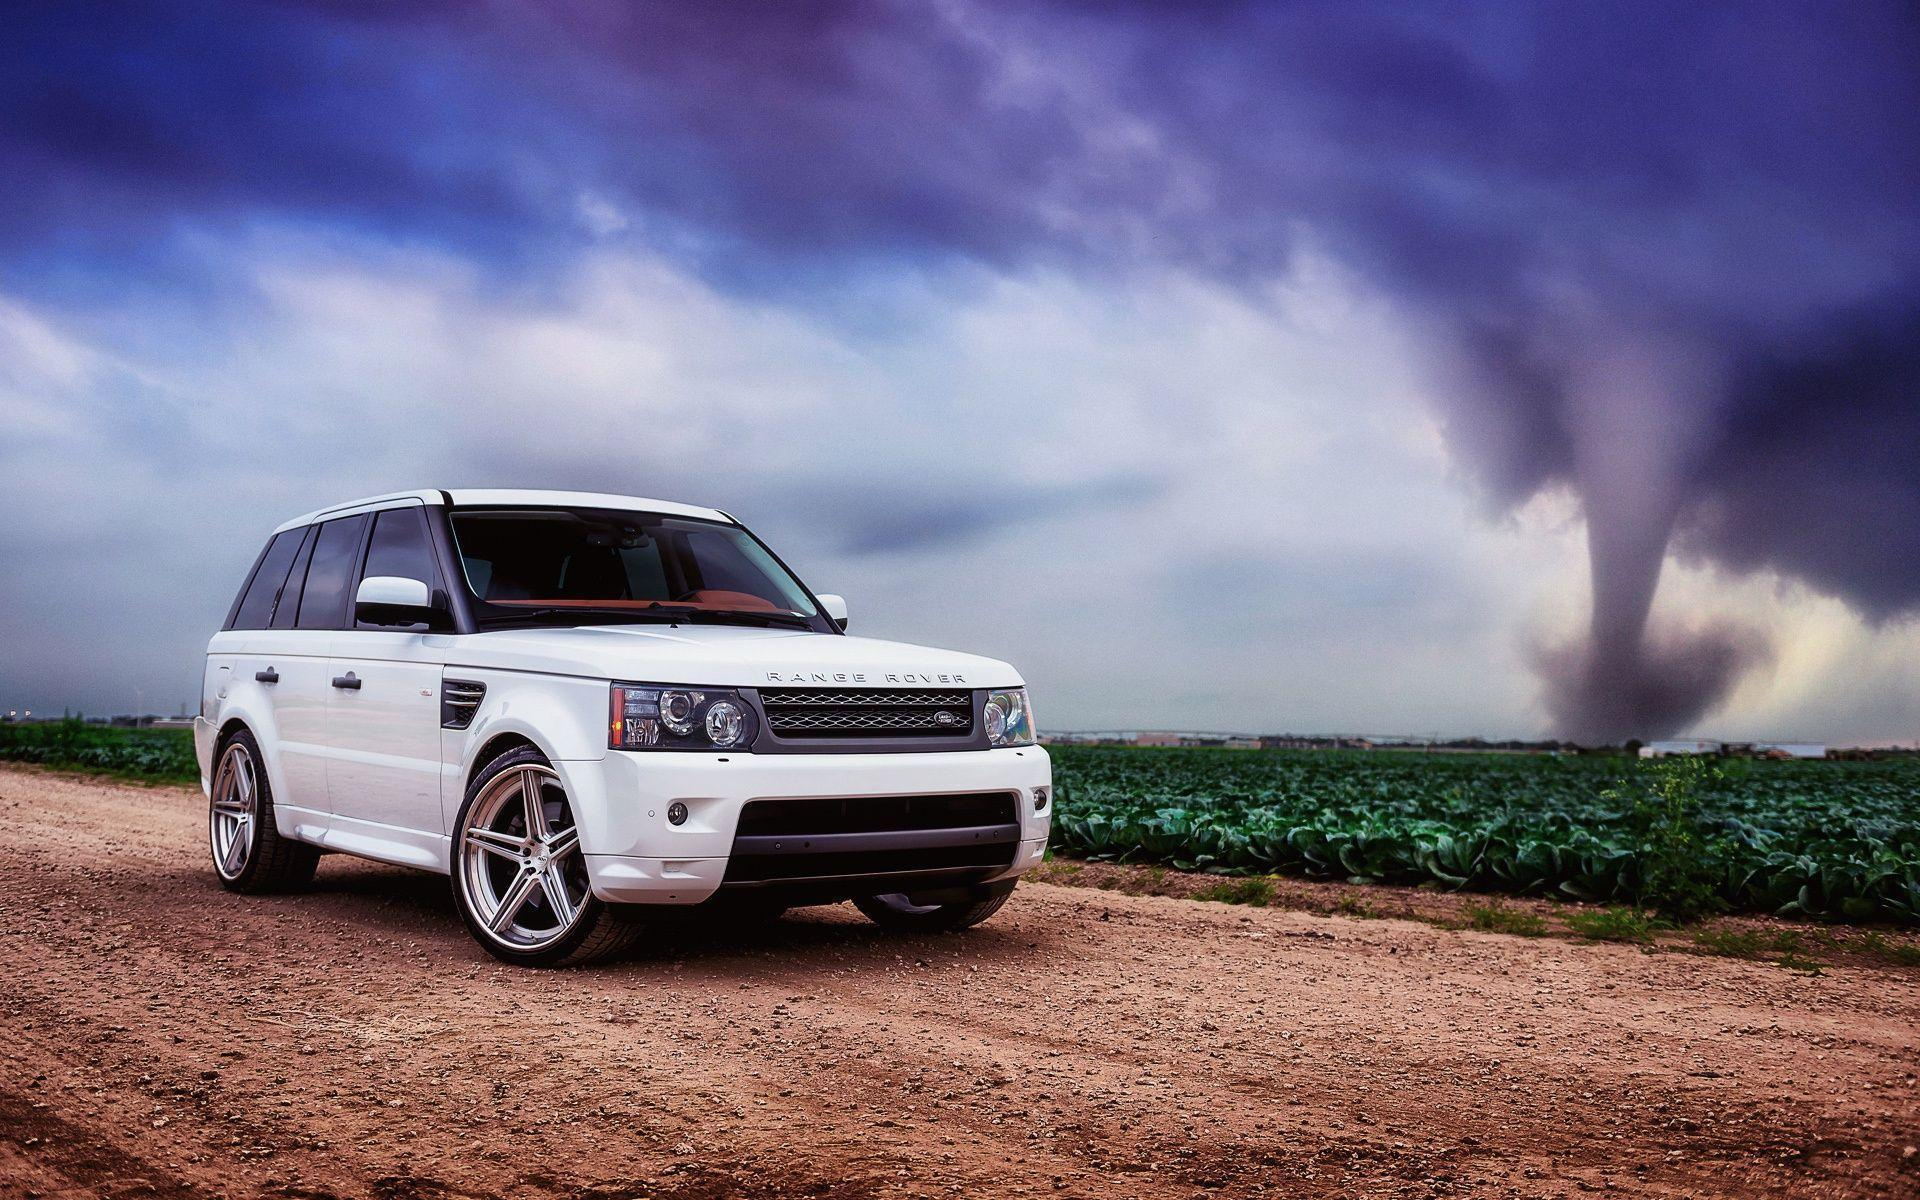 HD Range Rover Wallpapers & Range Rover Background Images For Download